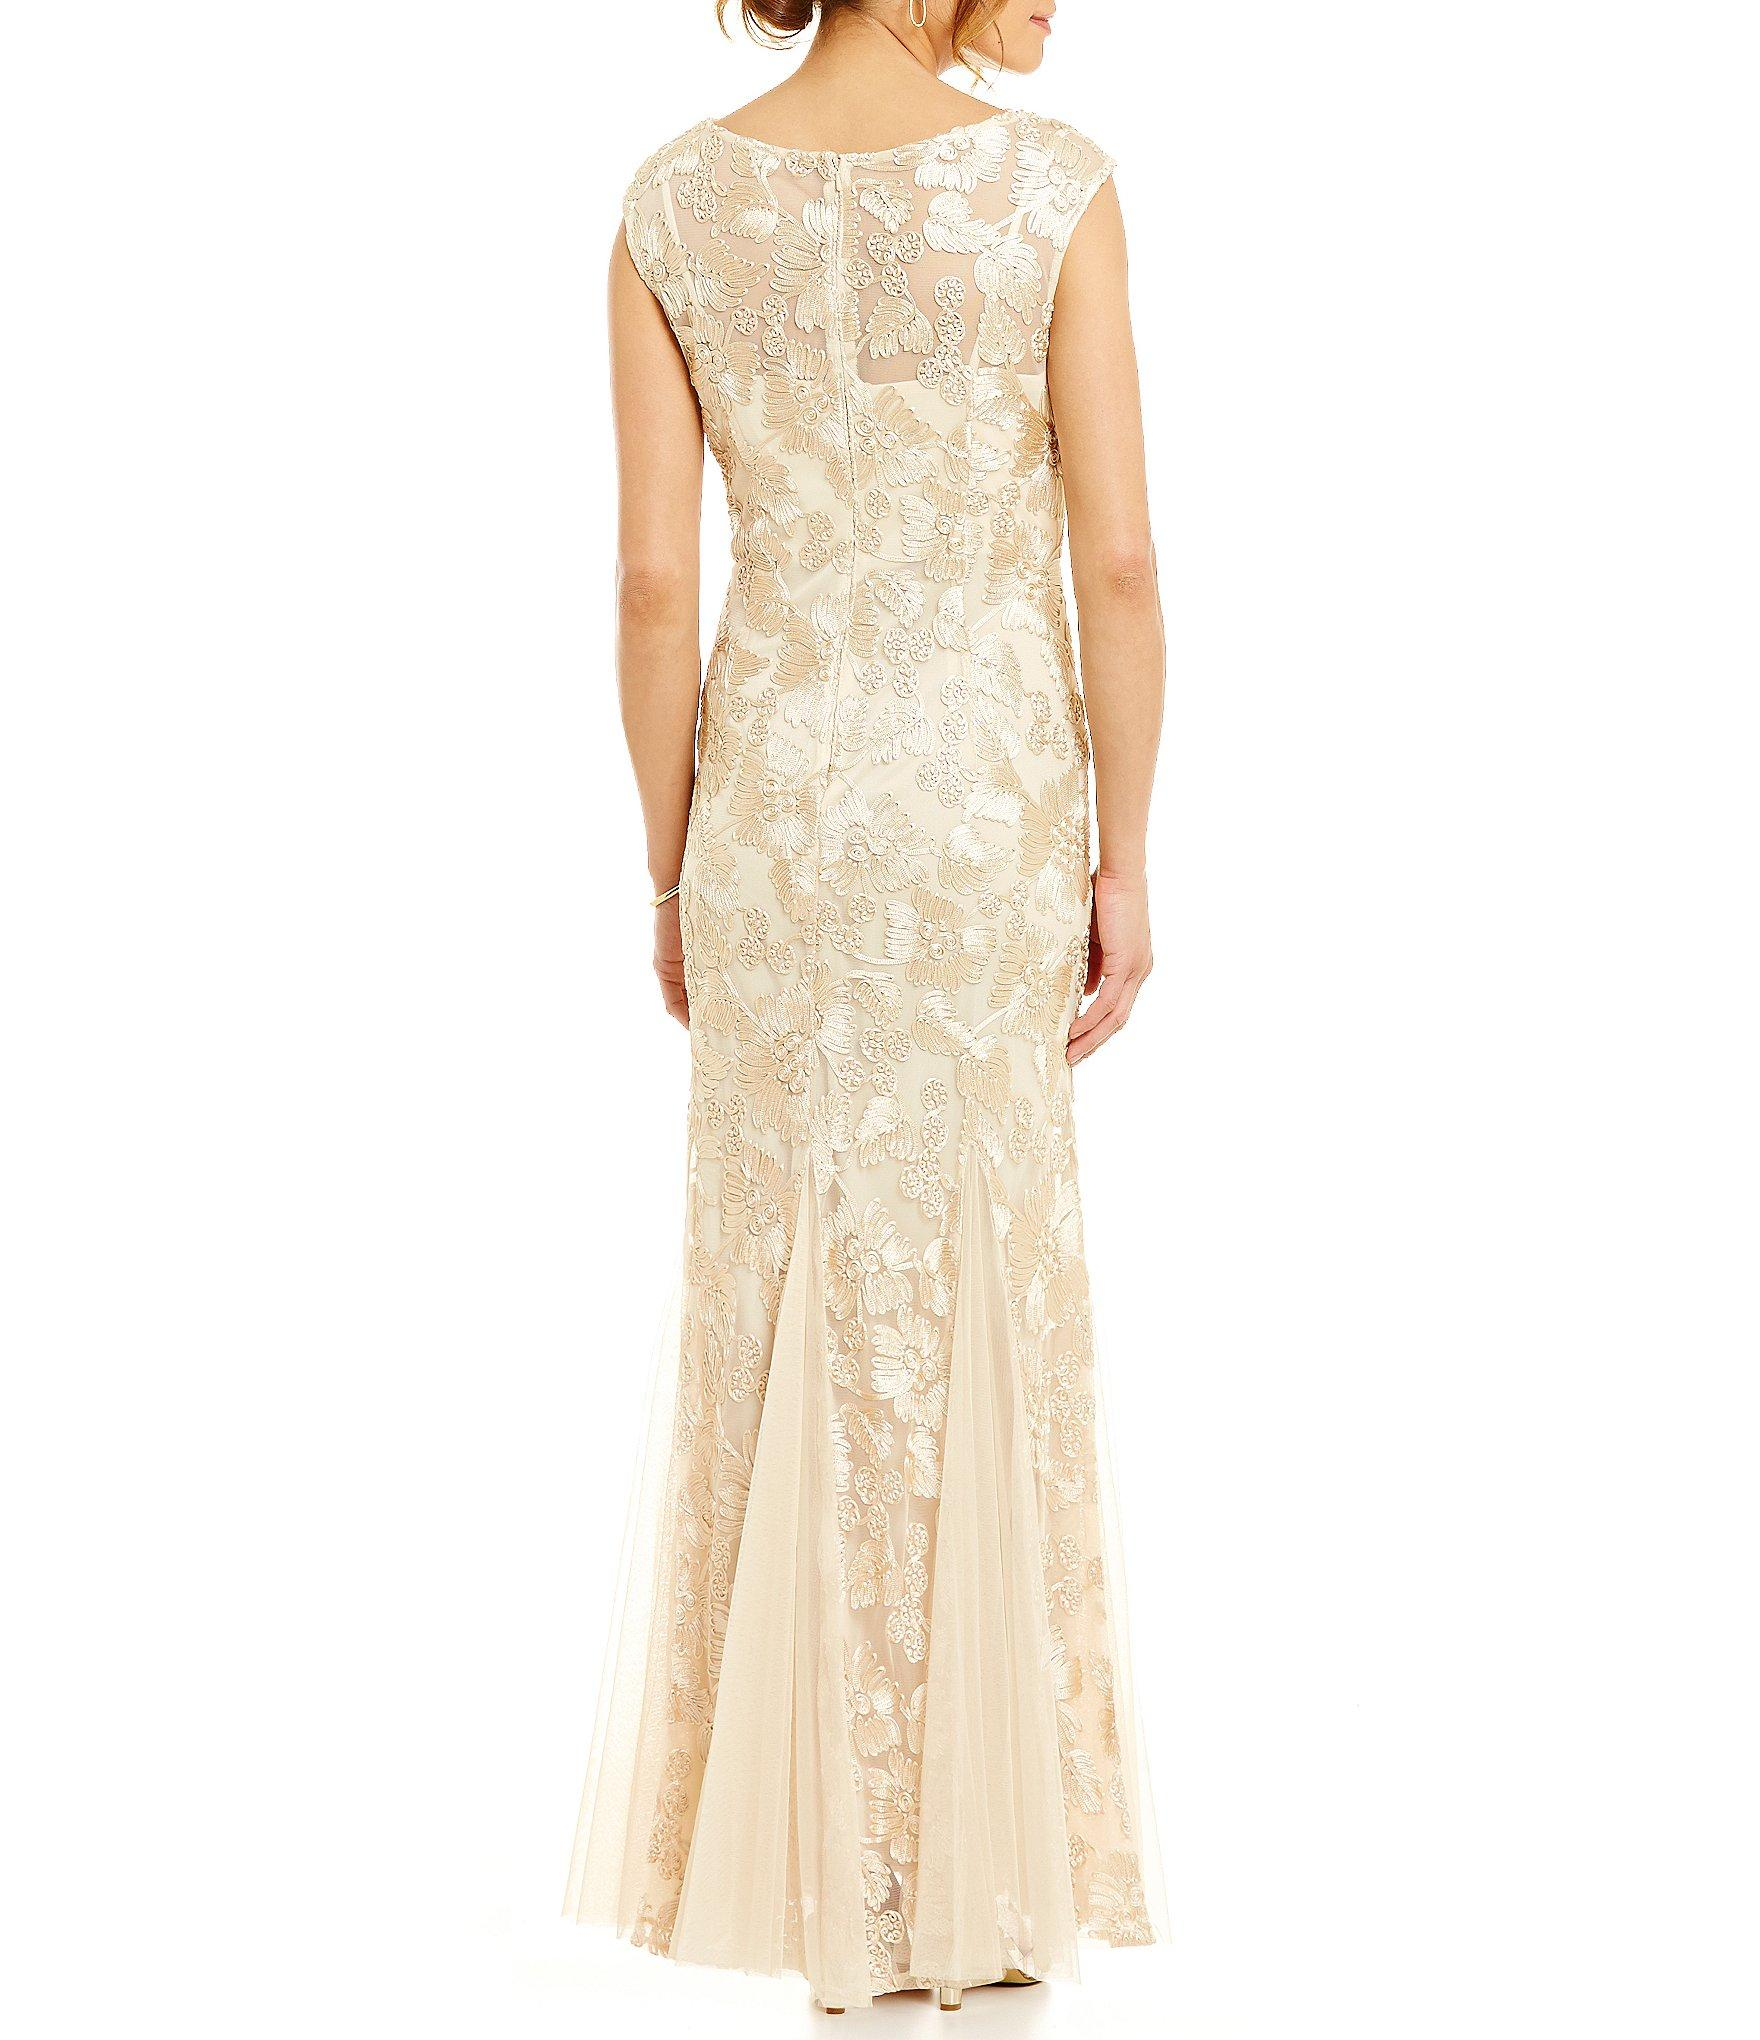 e39b6c1dd7c Alex Evenings - Metallic Petite Illusion Boat Neck Sleeveless Floral  Embroidered Gown - Lyst. View fullscreen